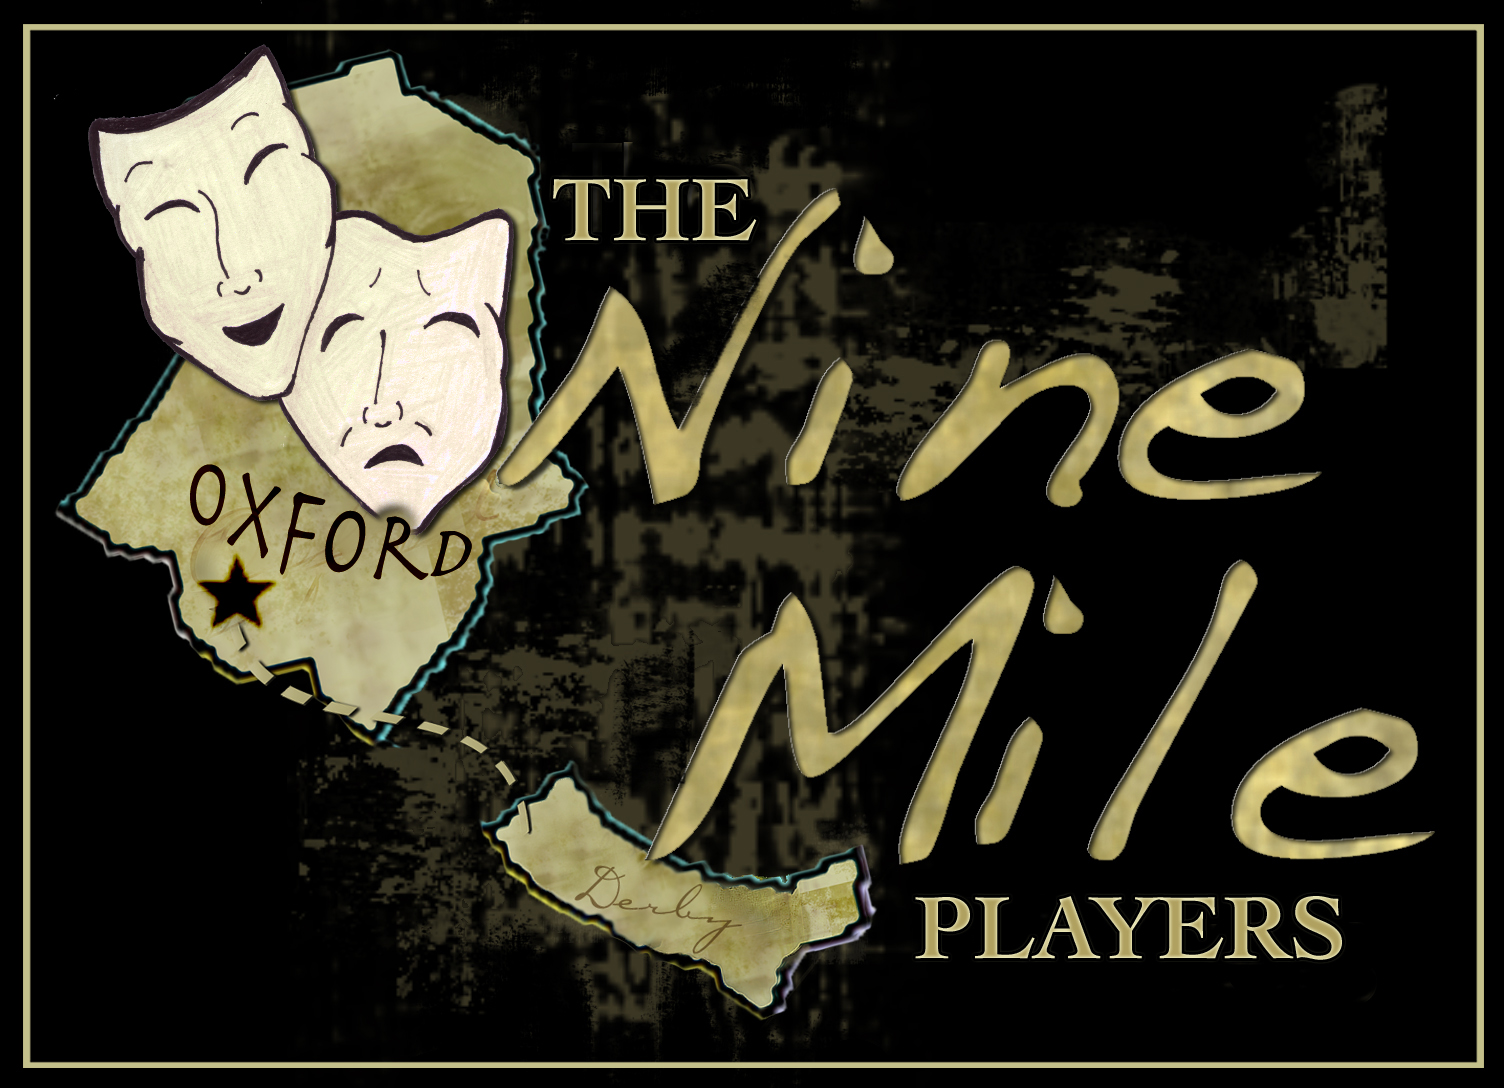 The Nine Mile Players